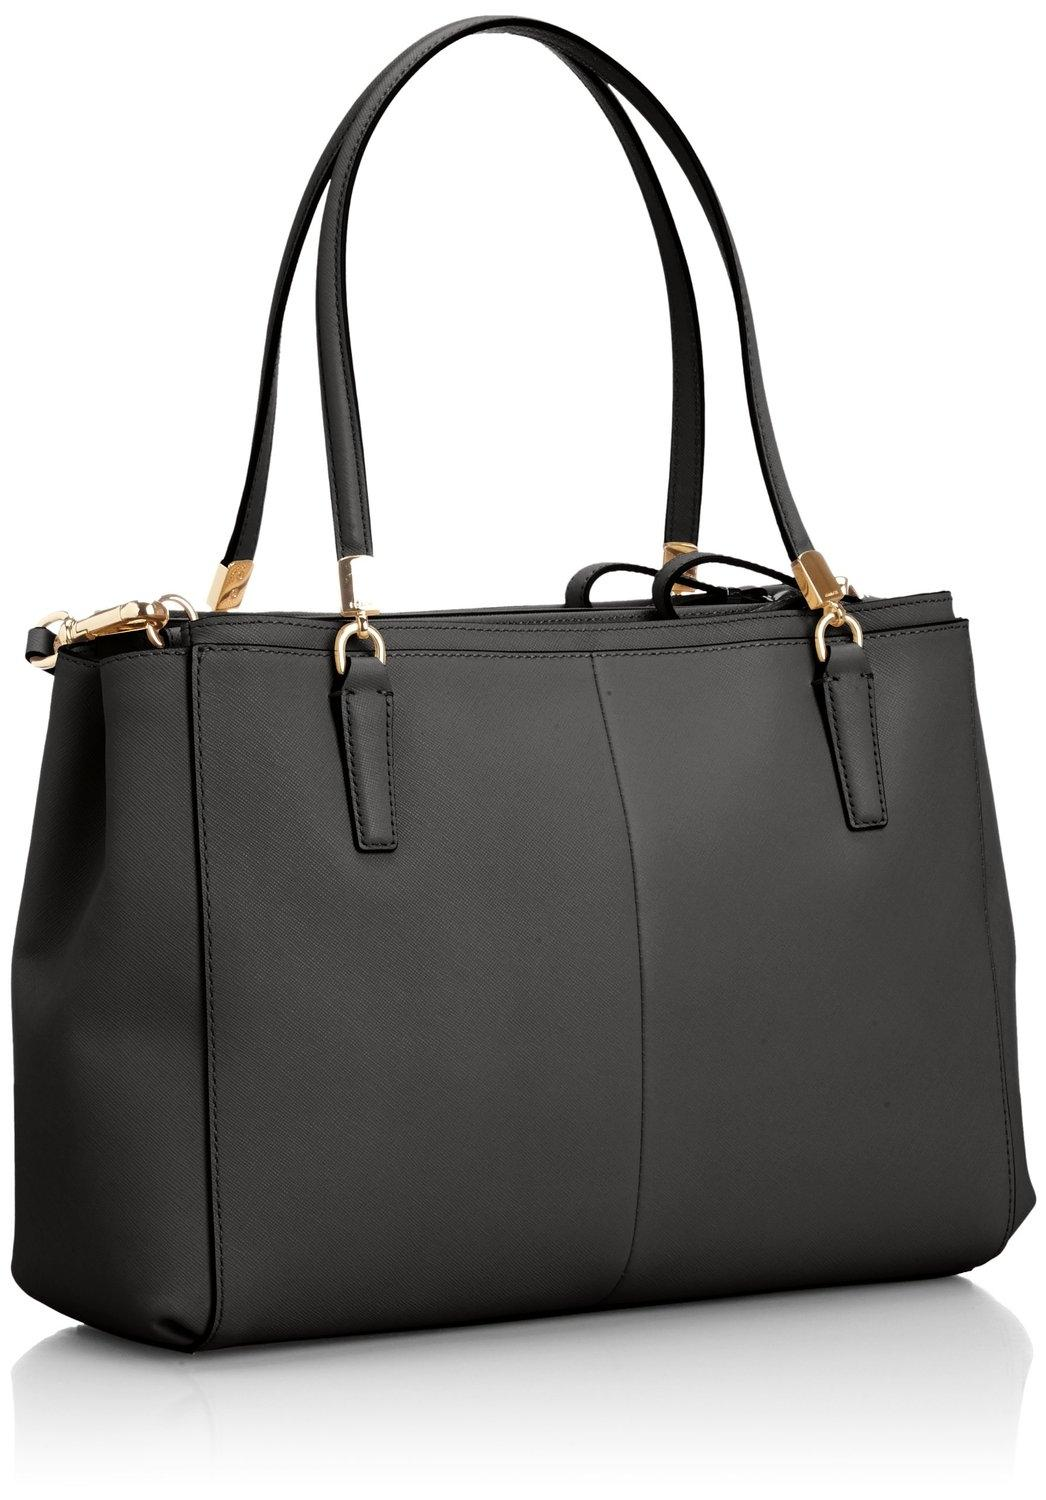 5b871d73fcafa ... italy coach christie 29422 madison carryall purse black saffiano  leather satchel tradesy 71150 8108a